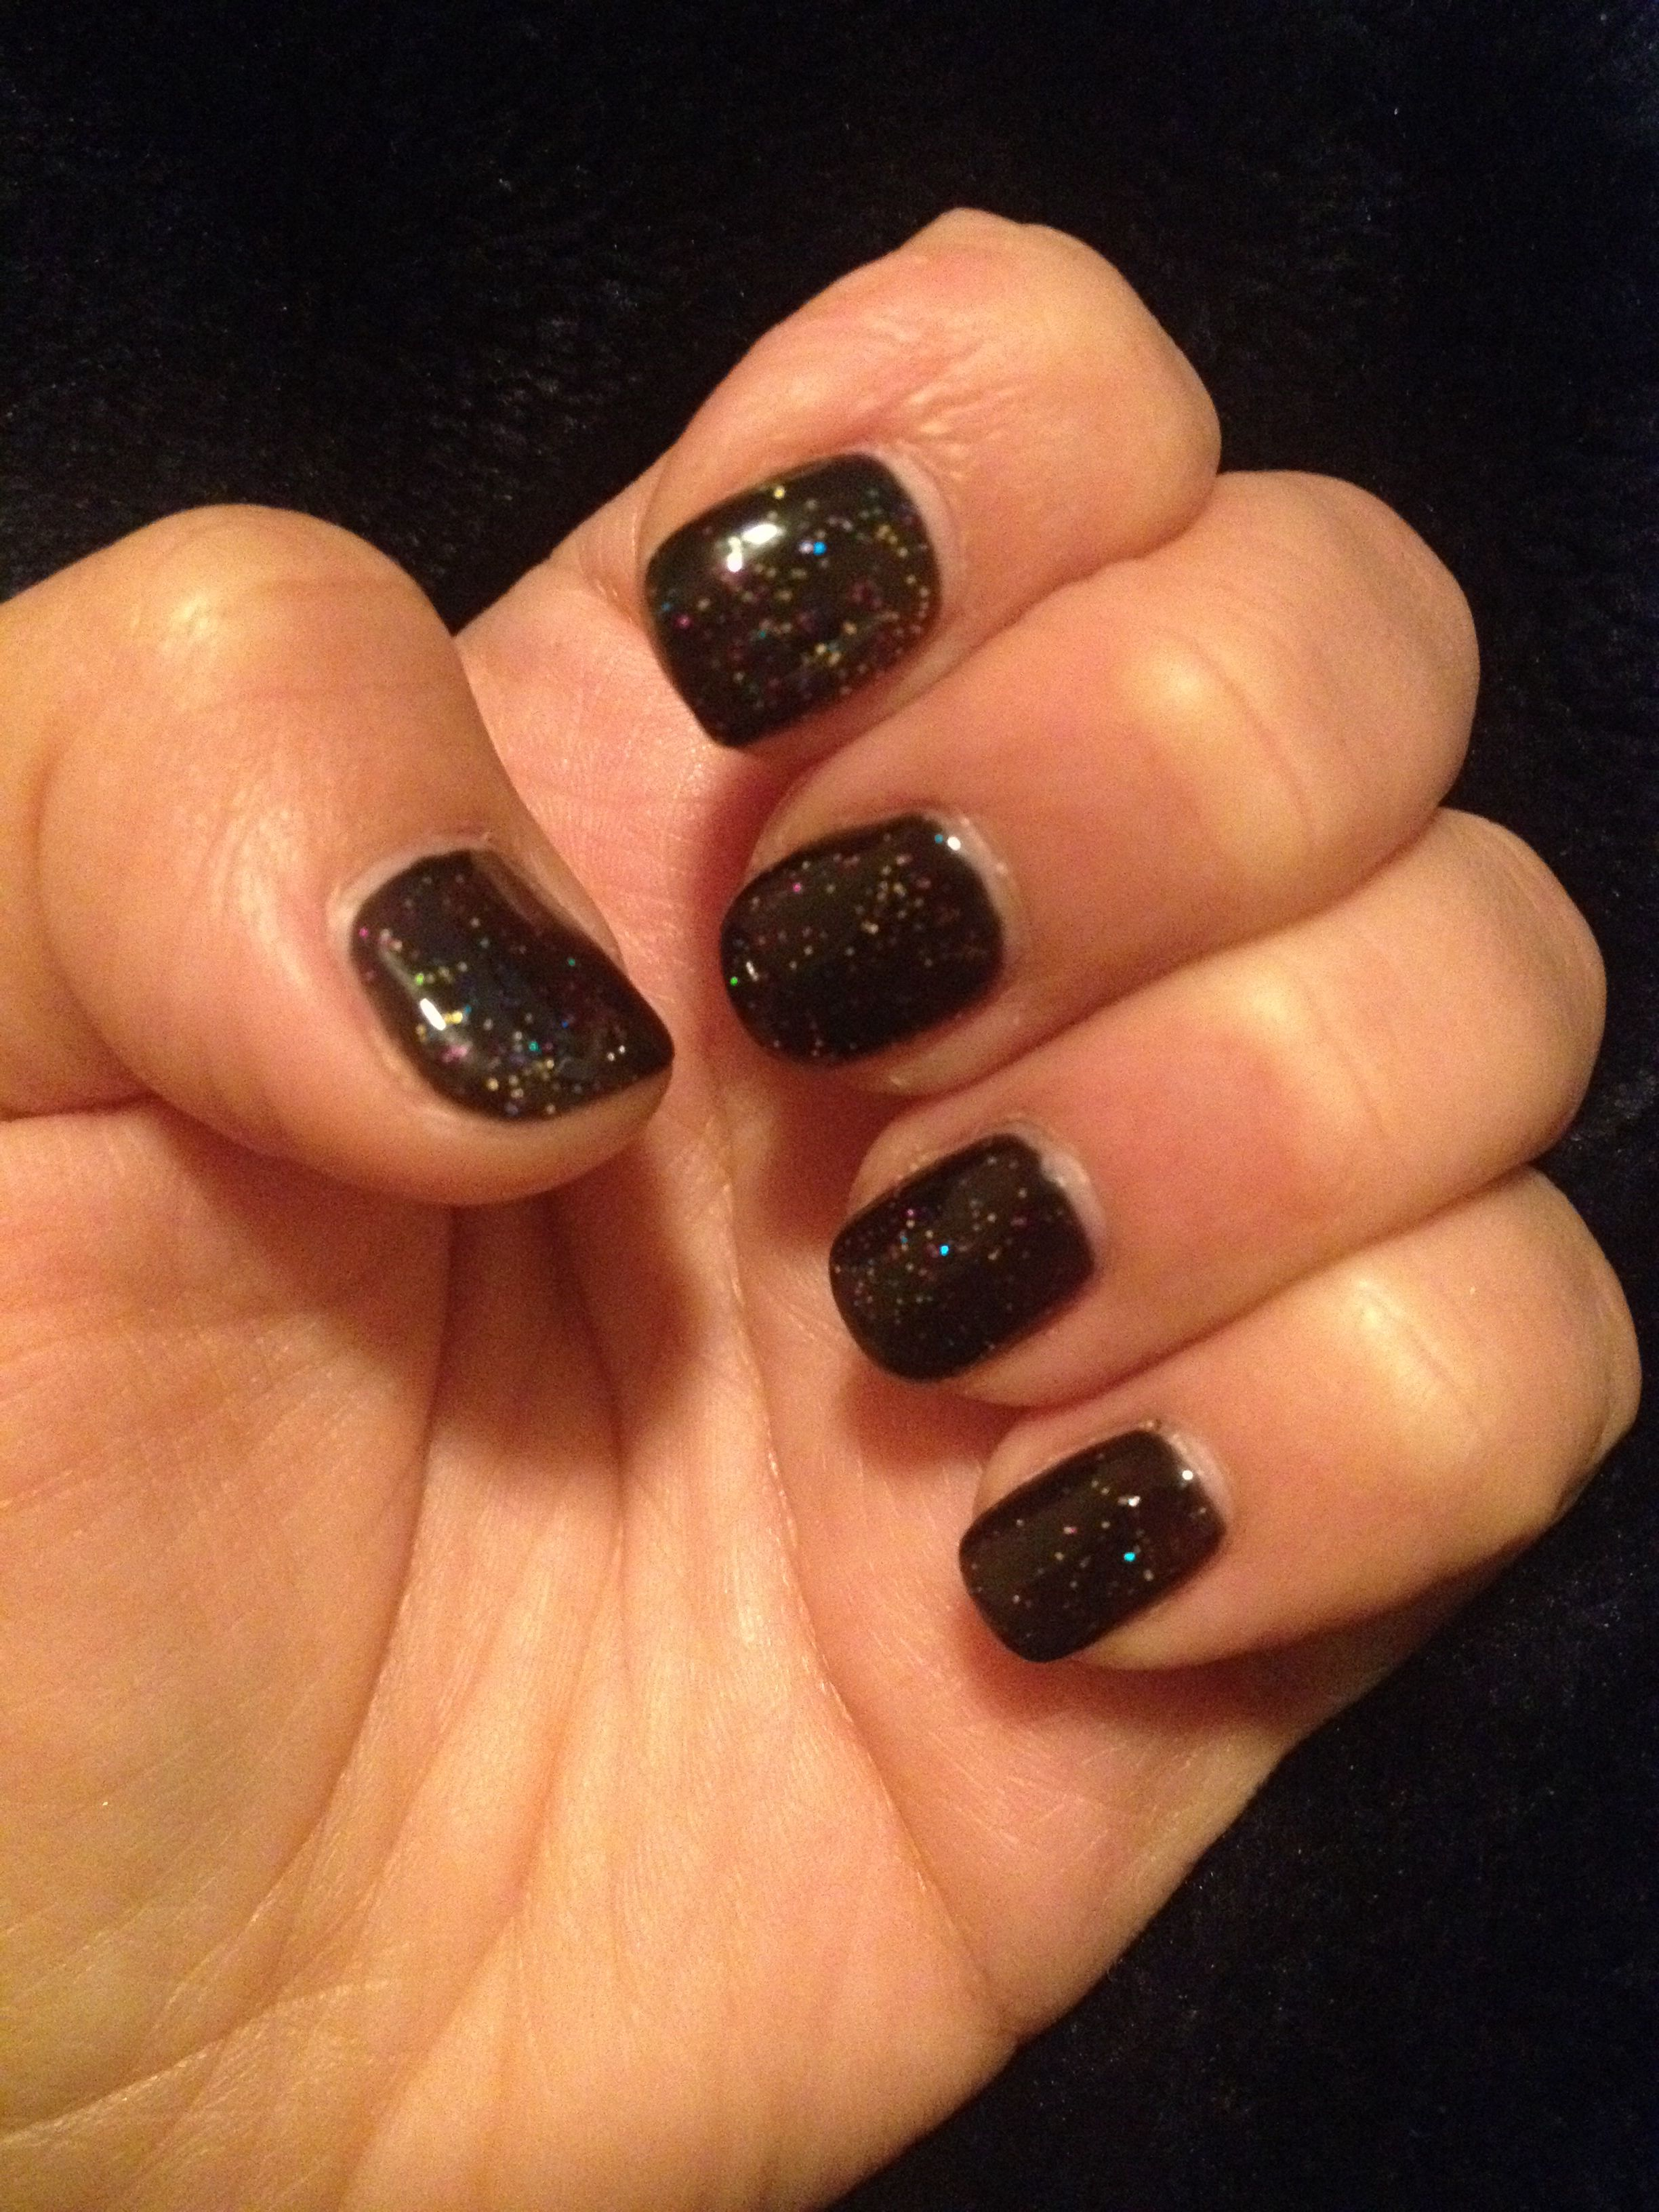 Loving My New Years Shellac Nails Black With Glitter